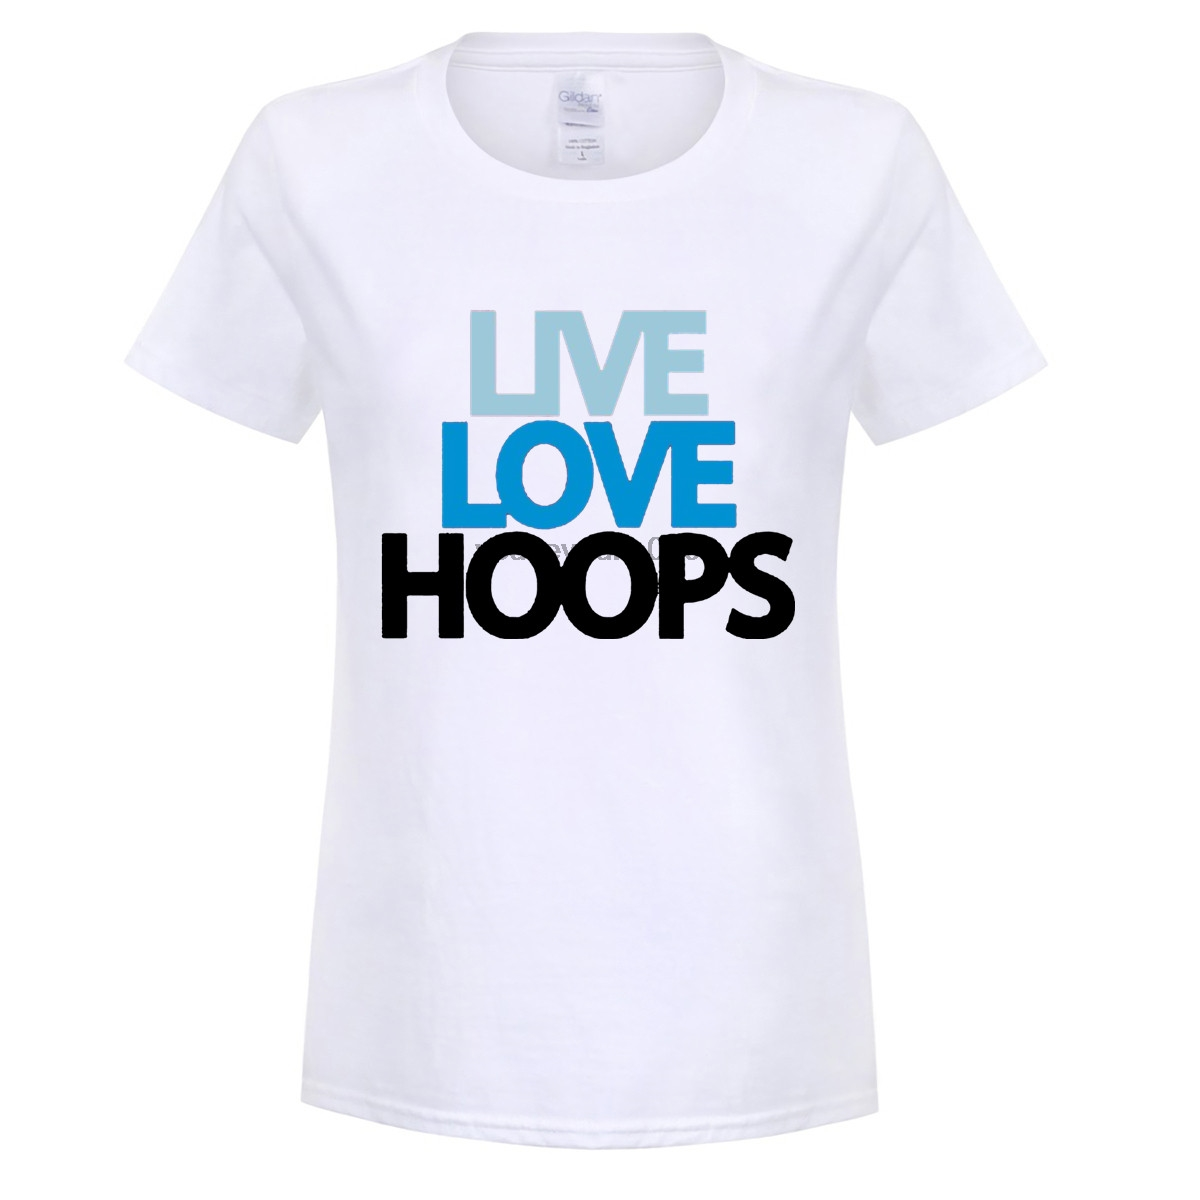 GILDAN funny women t shirt Live Love Hoops Guy T shirt For Sale Large Size Basketballer Team women Print T Shirt